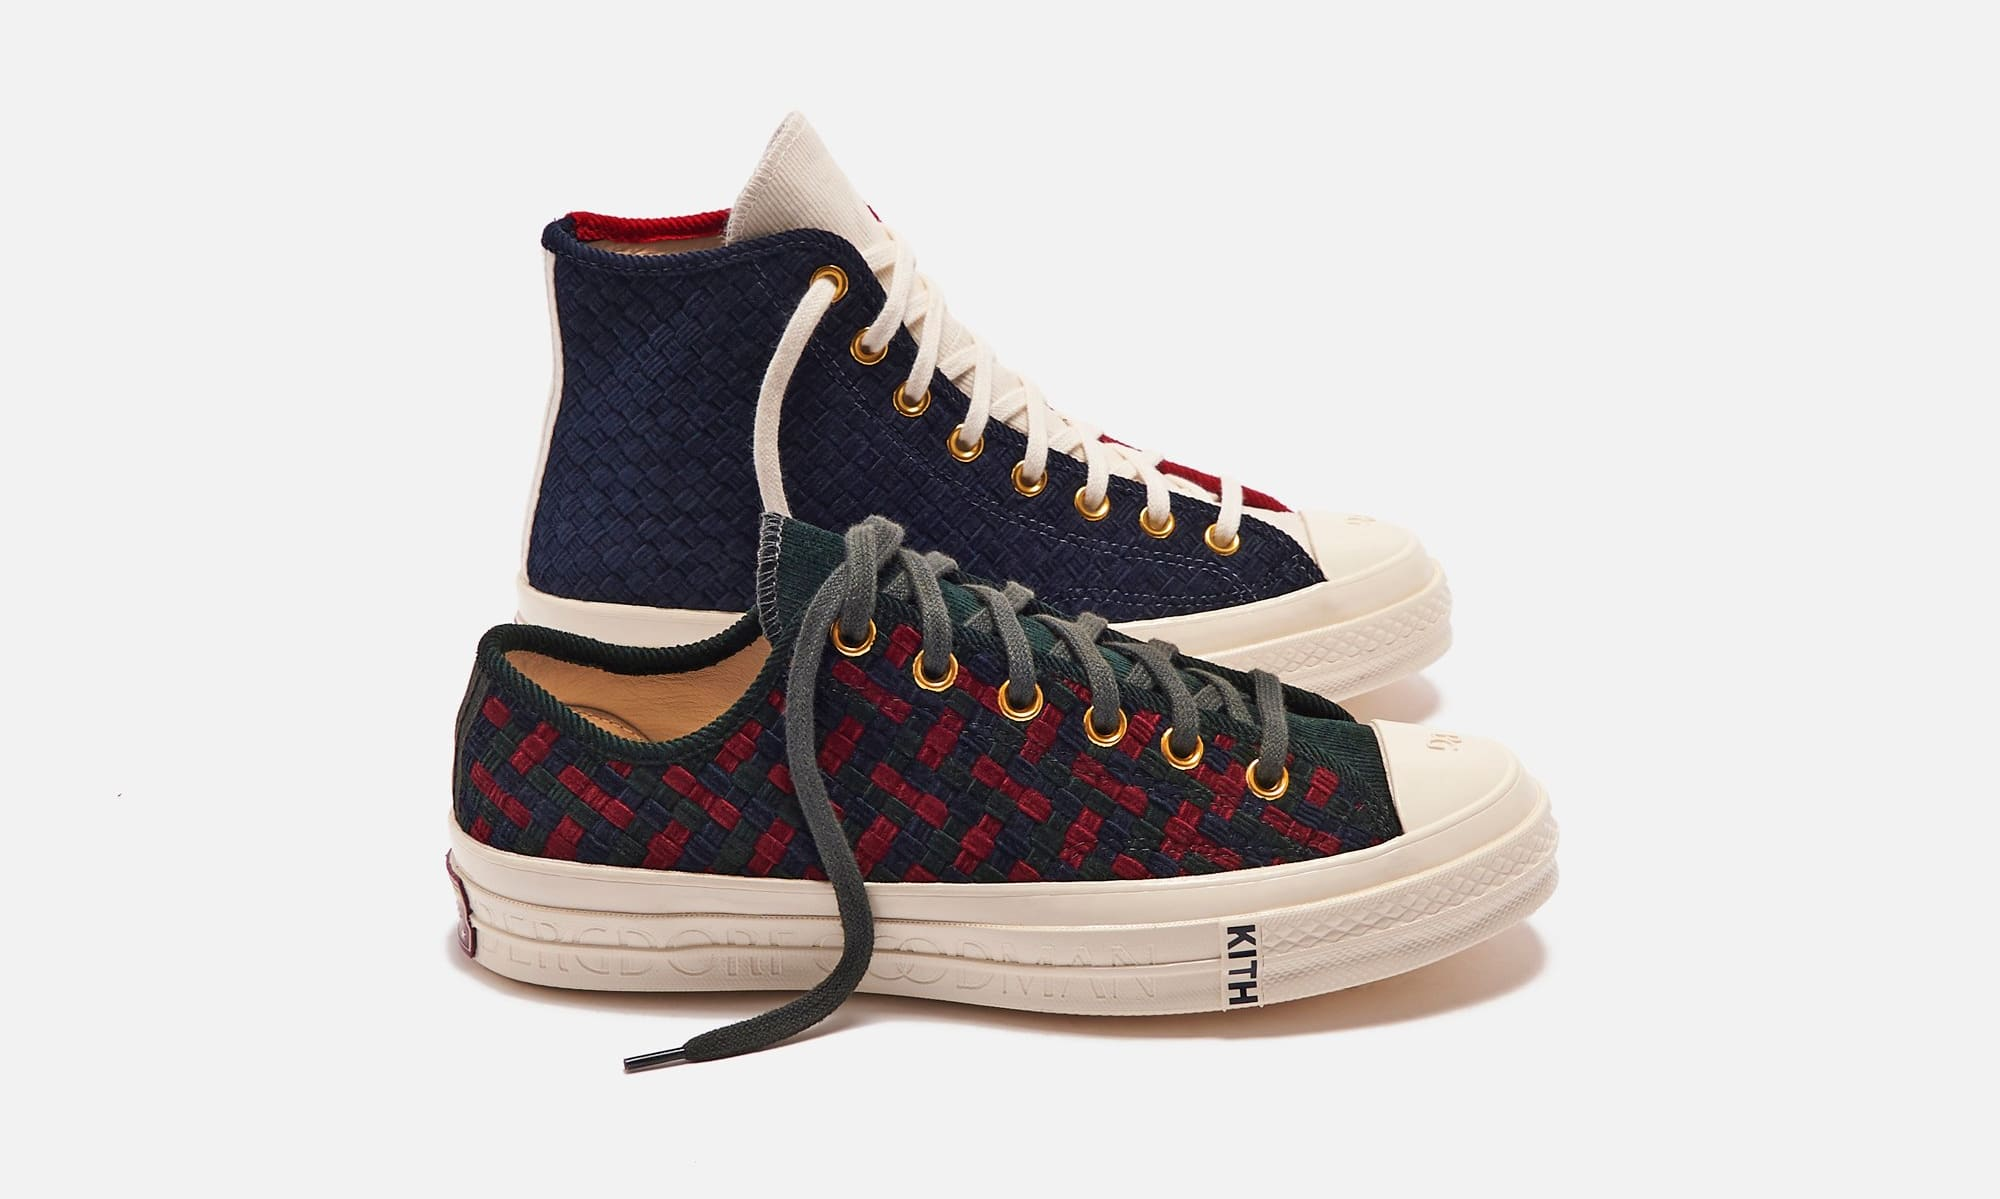 Kith x Bergdorf Goodman x Converse Fall 2020 Collection